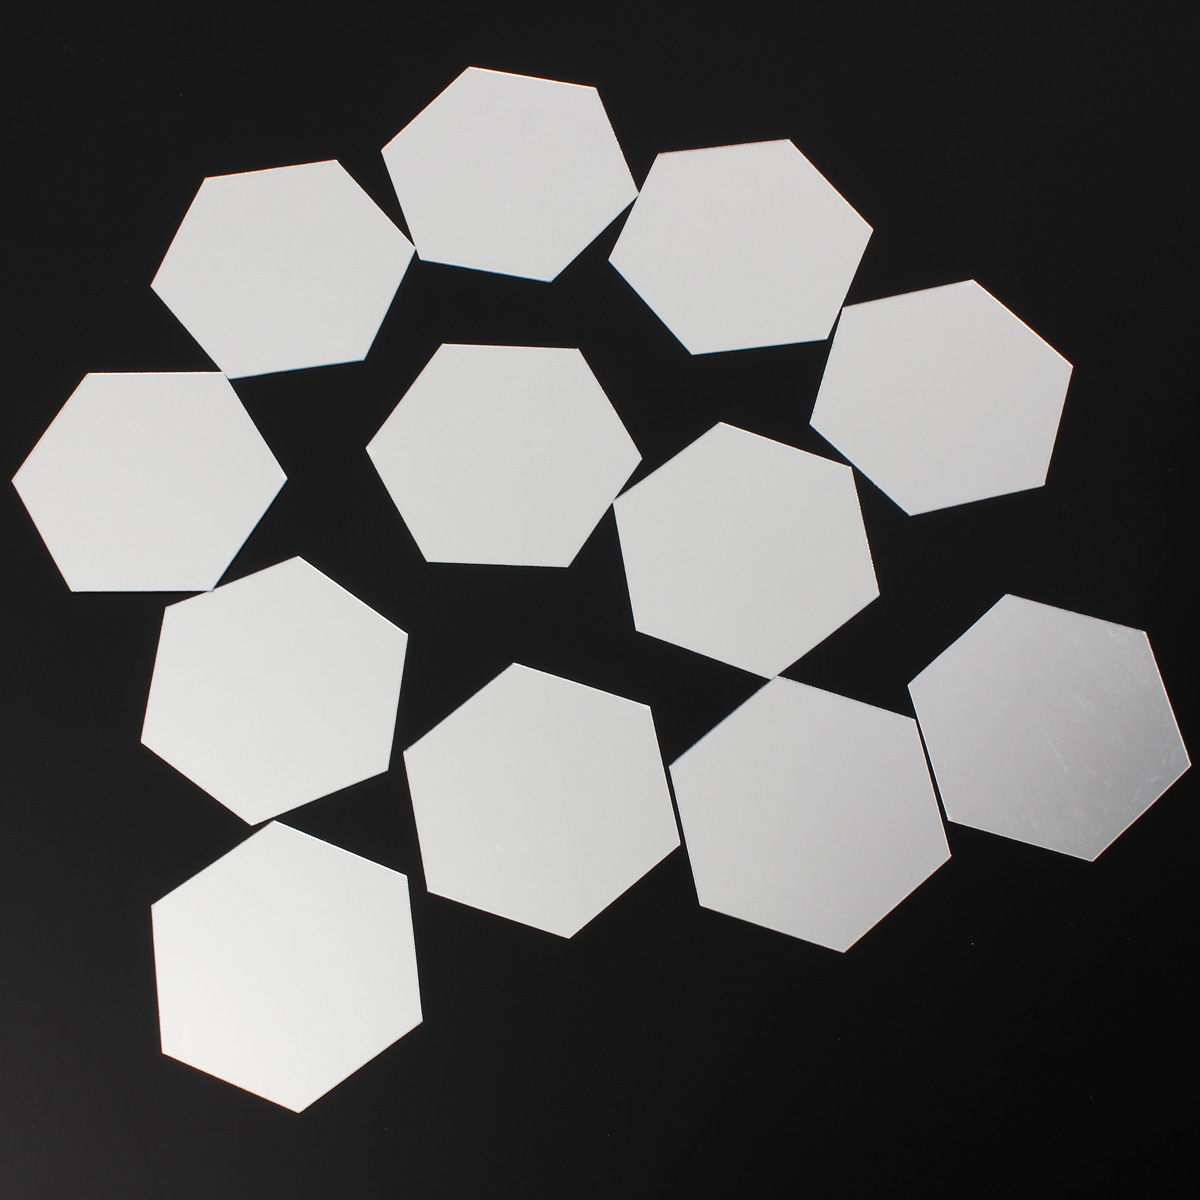 12Pcs 8cm Mirror Wall Sticker Hexagon Removable Acrylic 3D Mirror DIY Home Room Decor Art